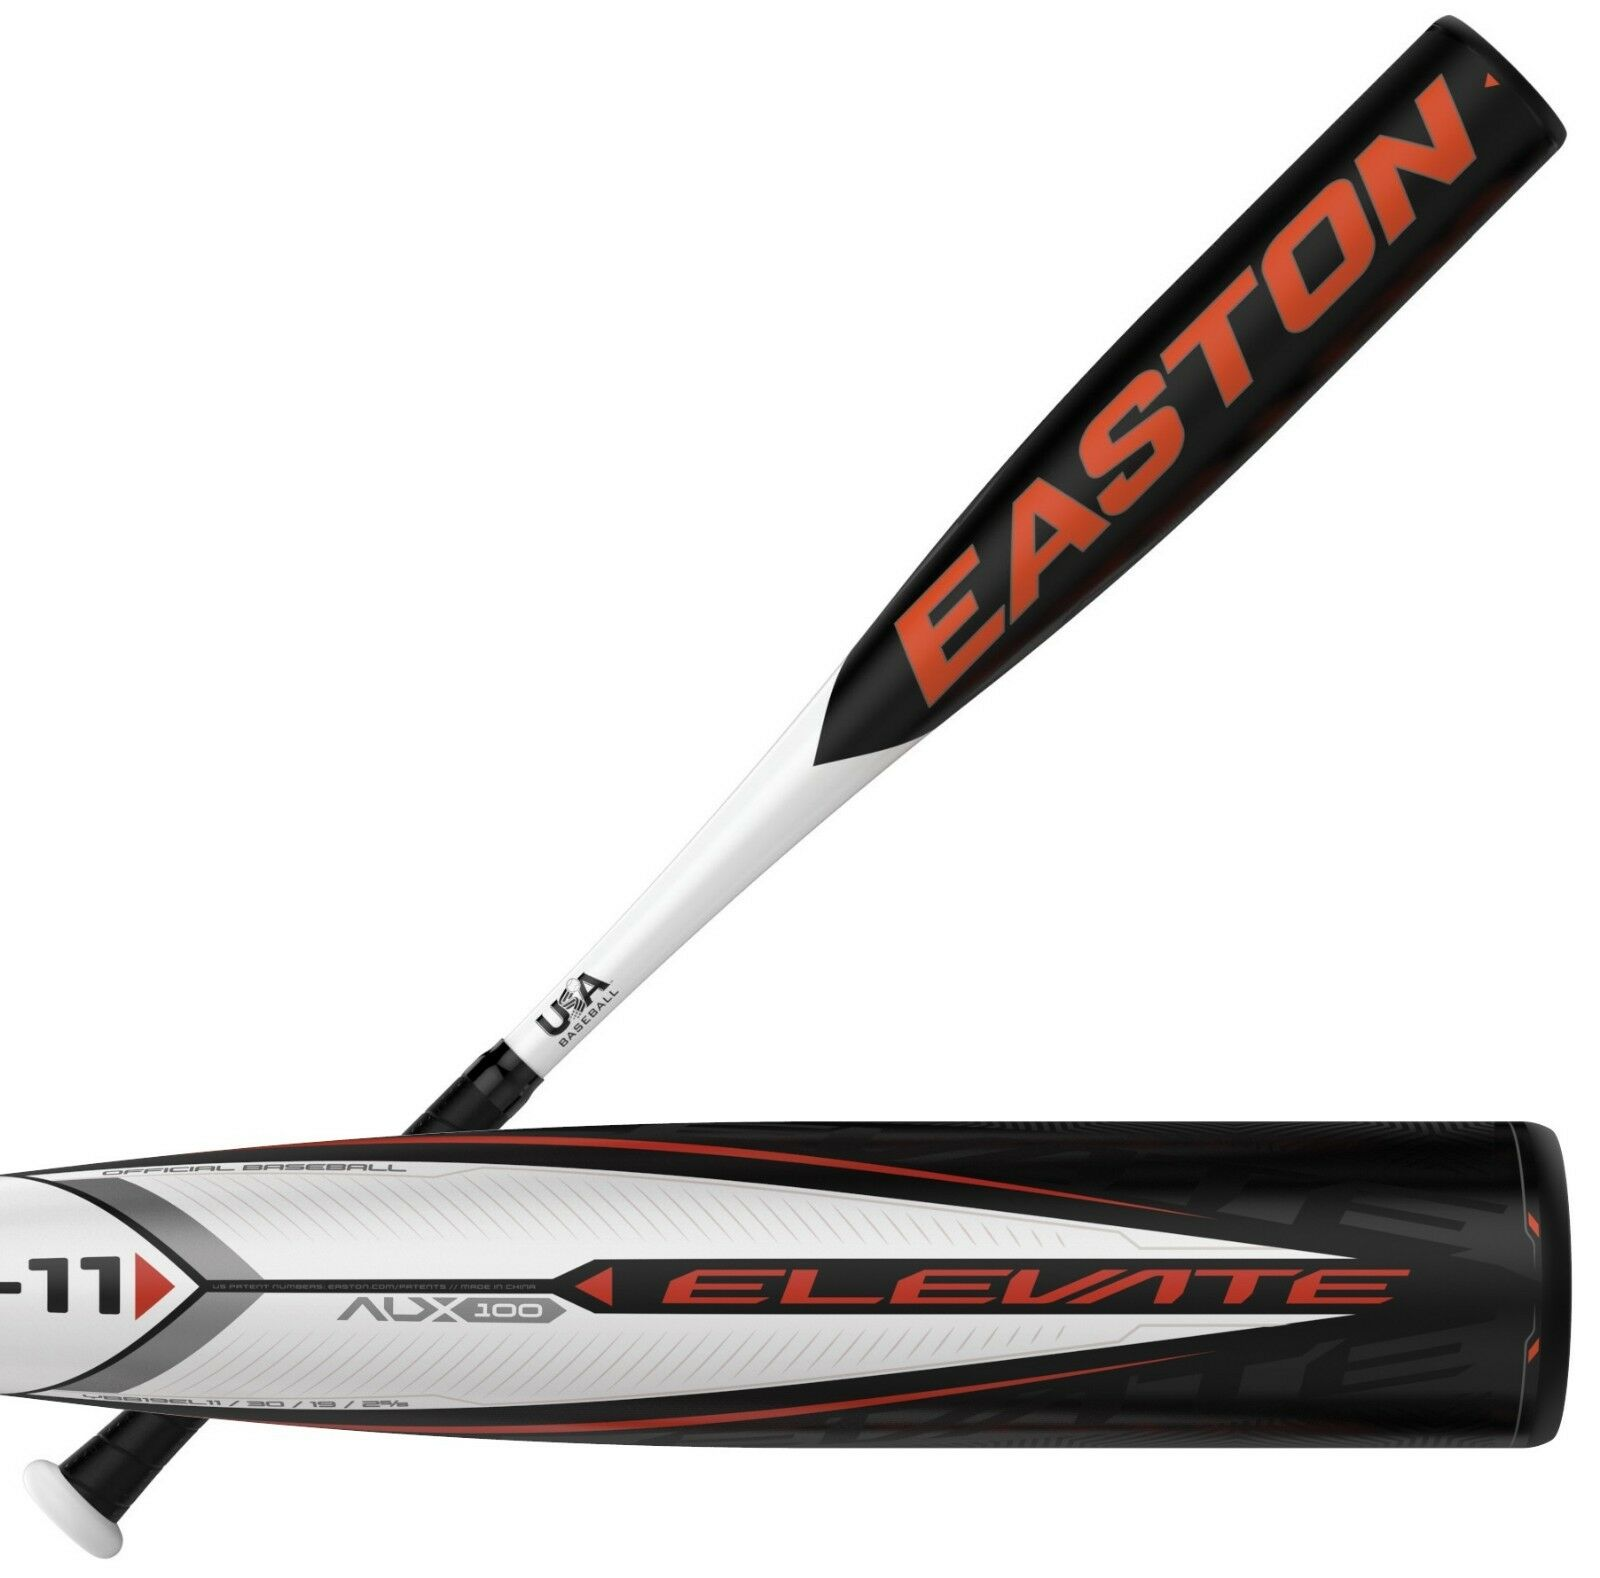 2019 Easton Elevate -11 27